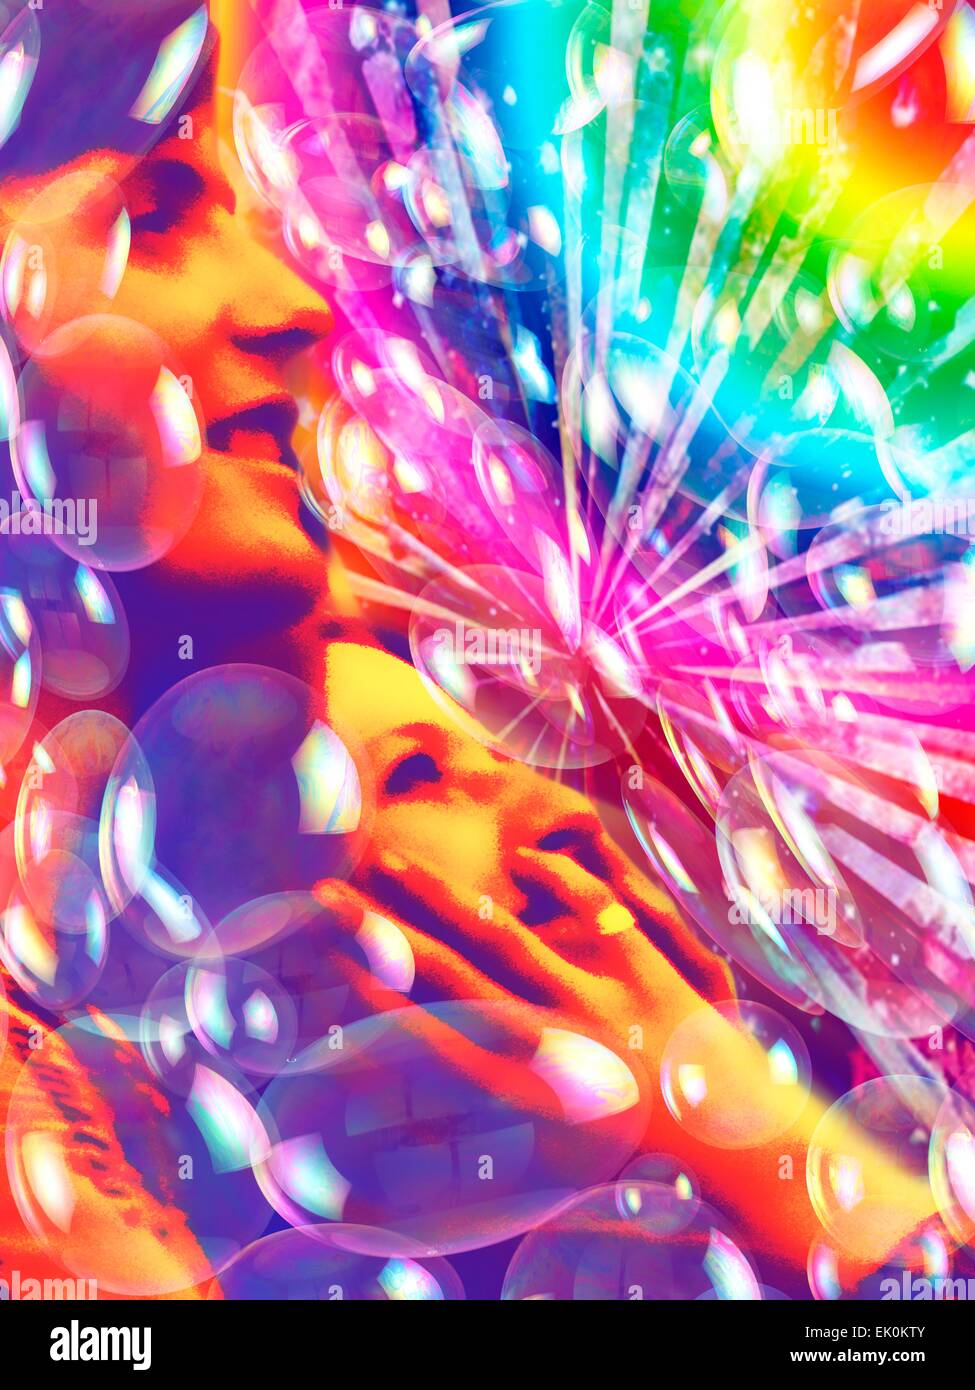 artwork, digitally generated, illustration, nobody, no one, no-one, psychedelic, colourful, colorful, bright, bright - Stock Image